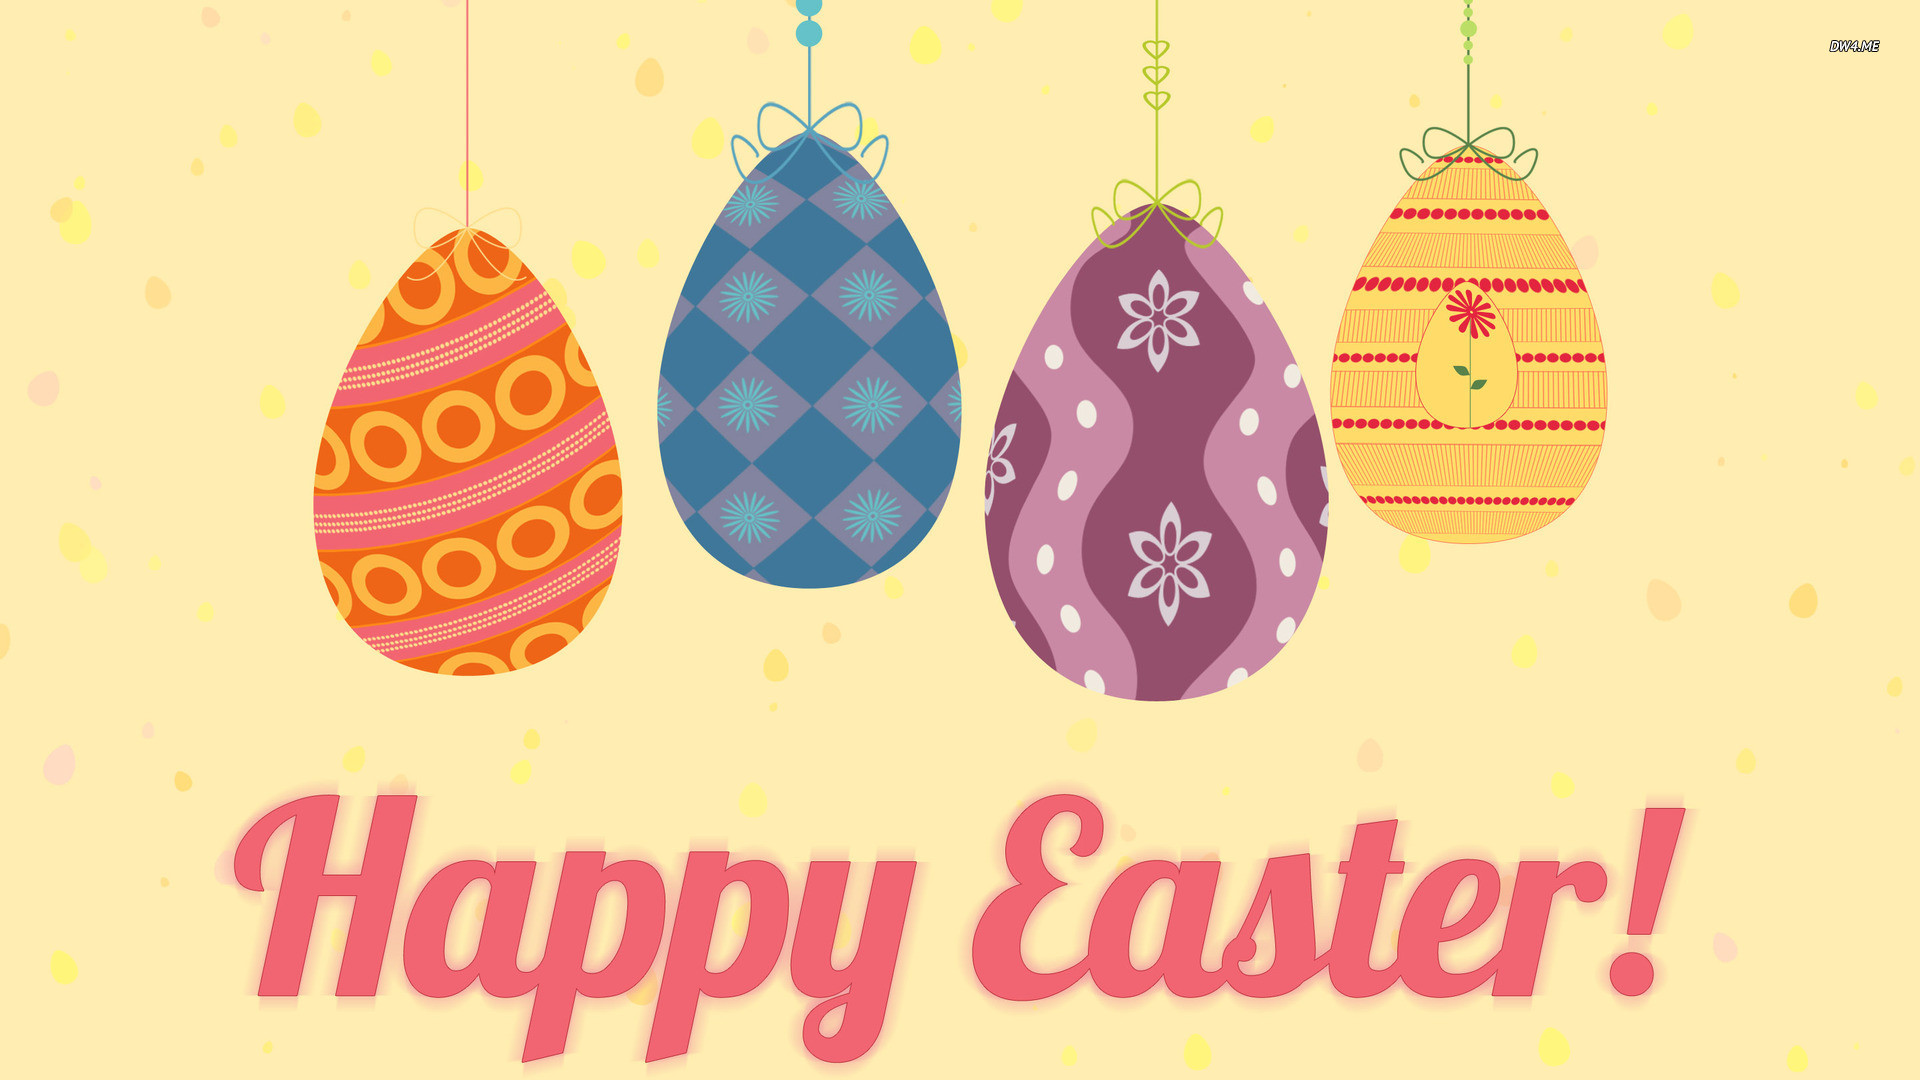 1920x1080 happy easter wallpapers hd wallpapers free 4k amazing artwork background  wallpapers colourful samsung phone wallpapers 1920×1080 Wallpaper HD